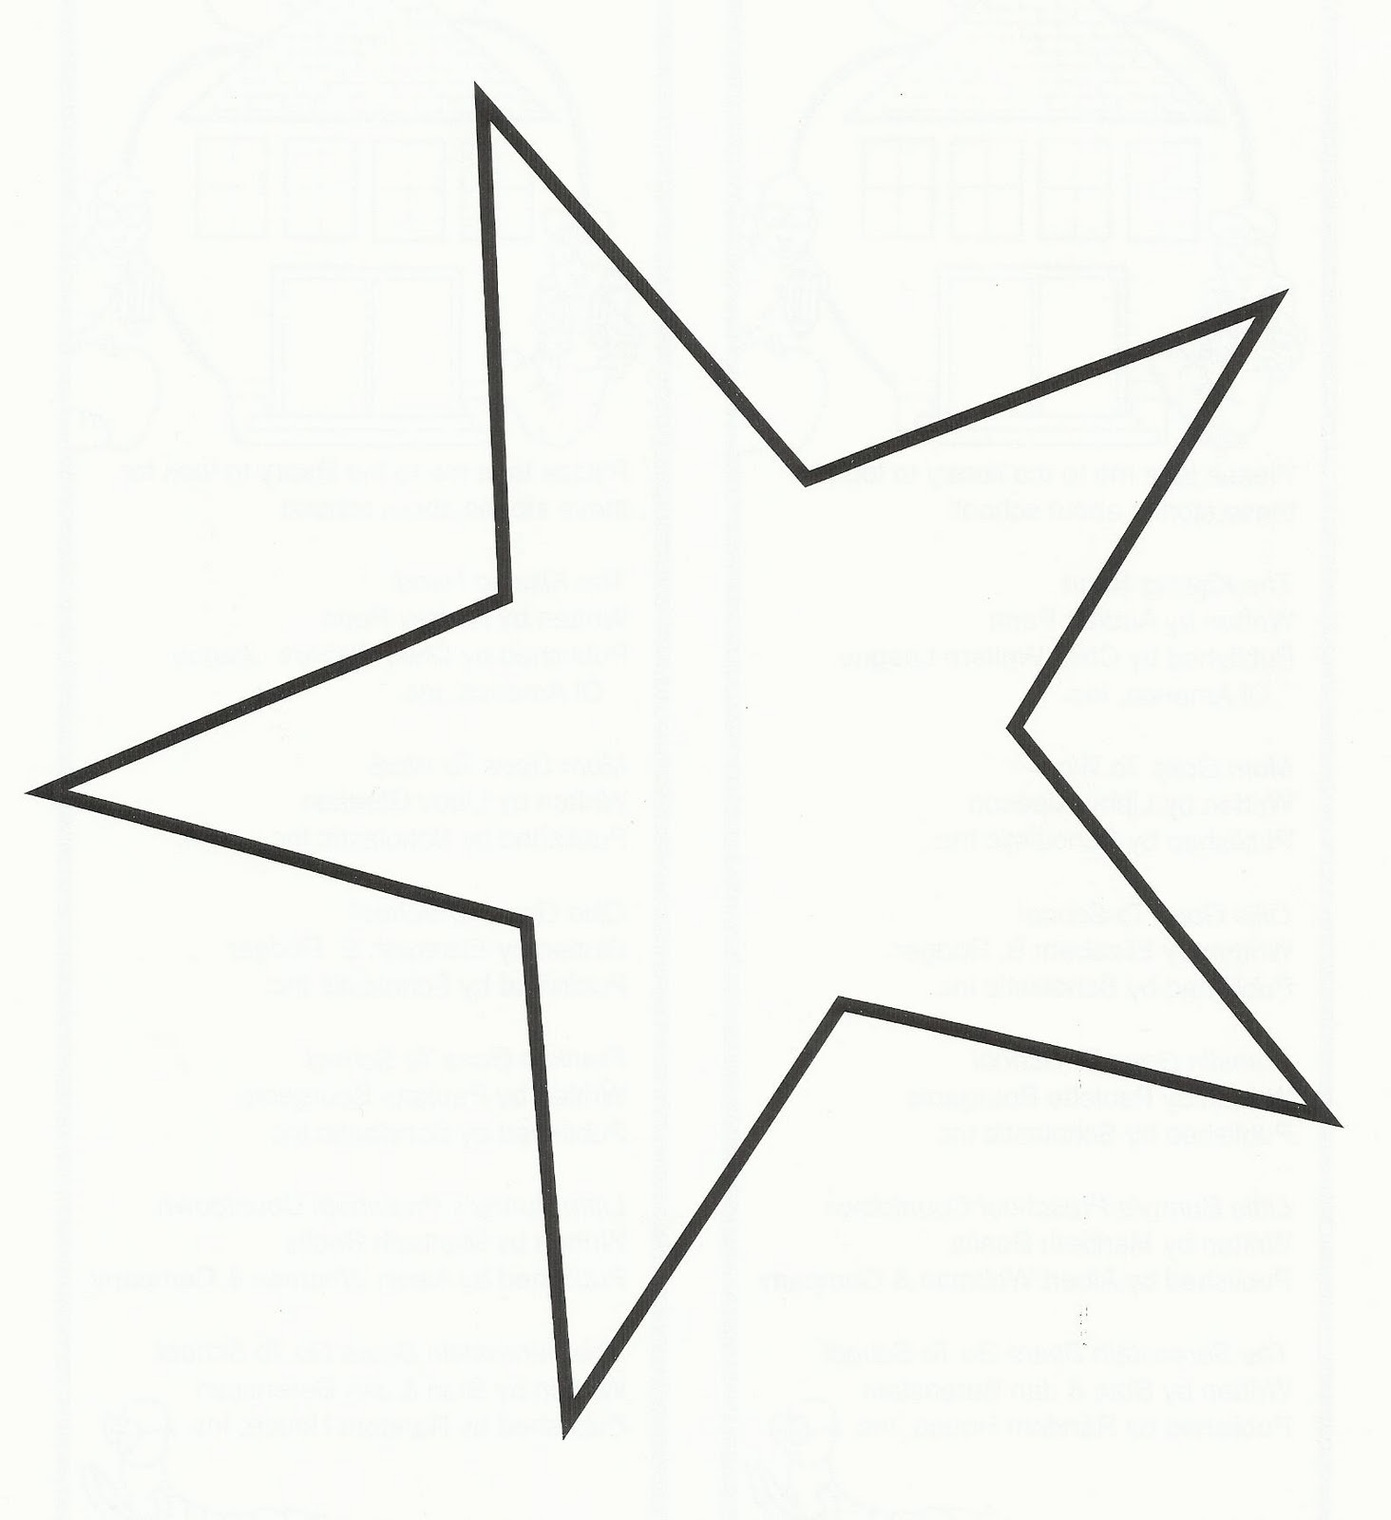 Star outline images five pointed star outline picture for print.